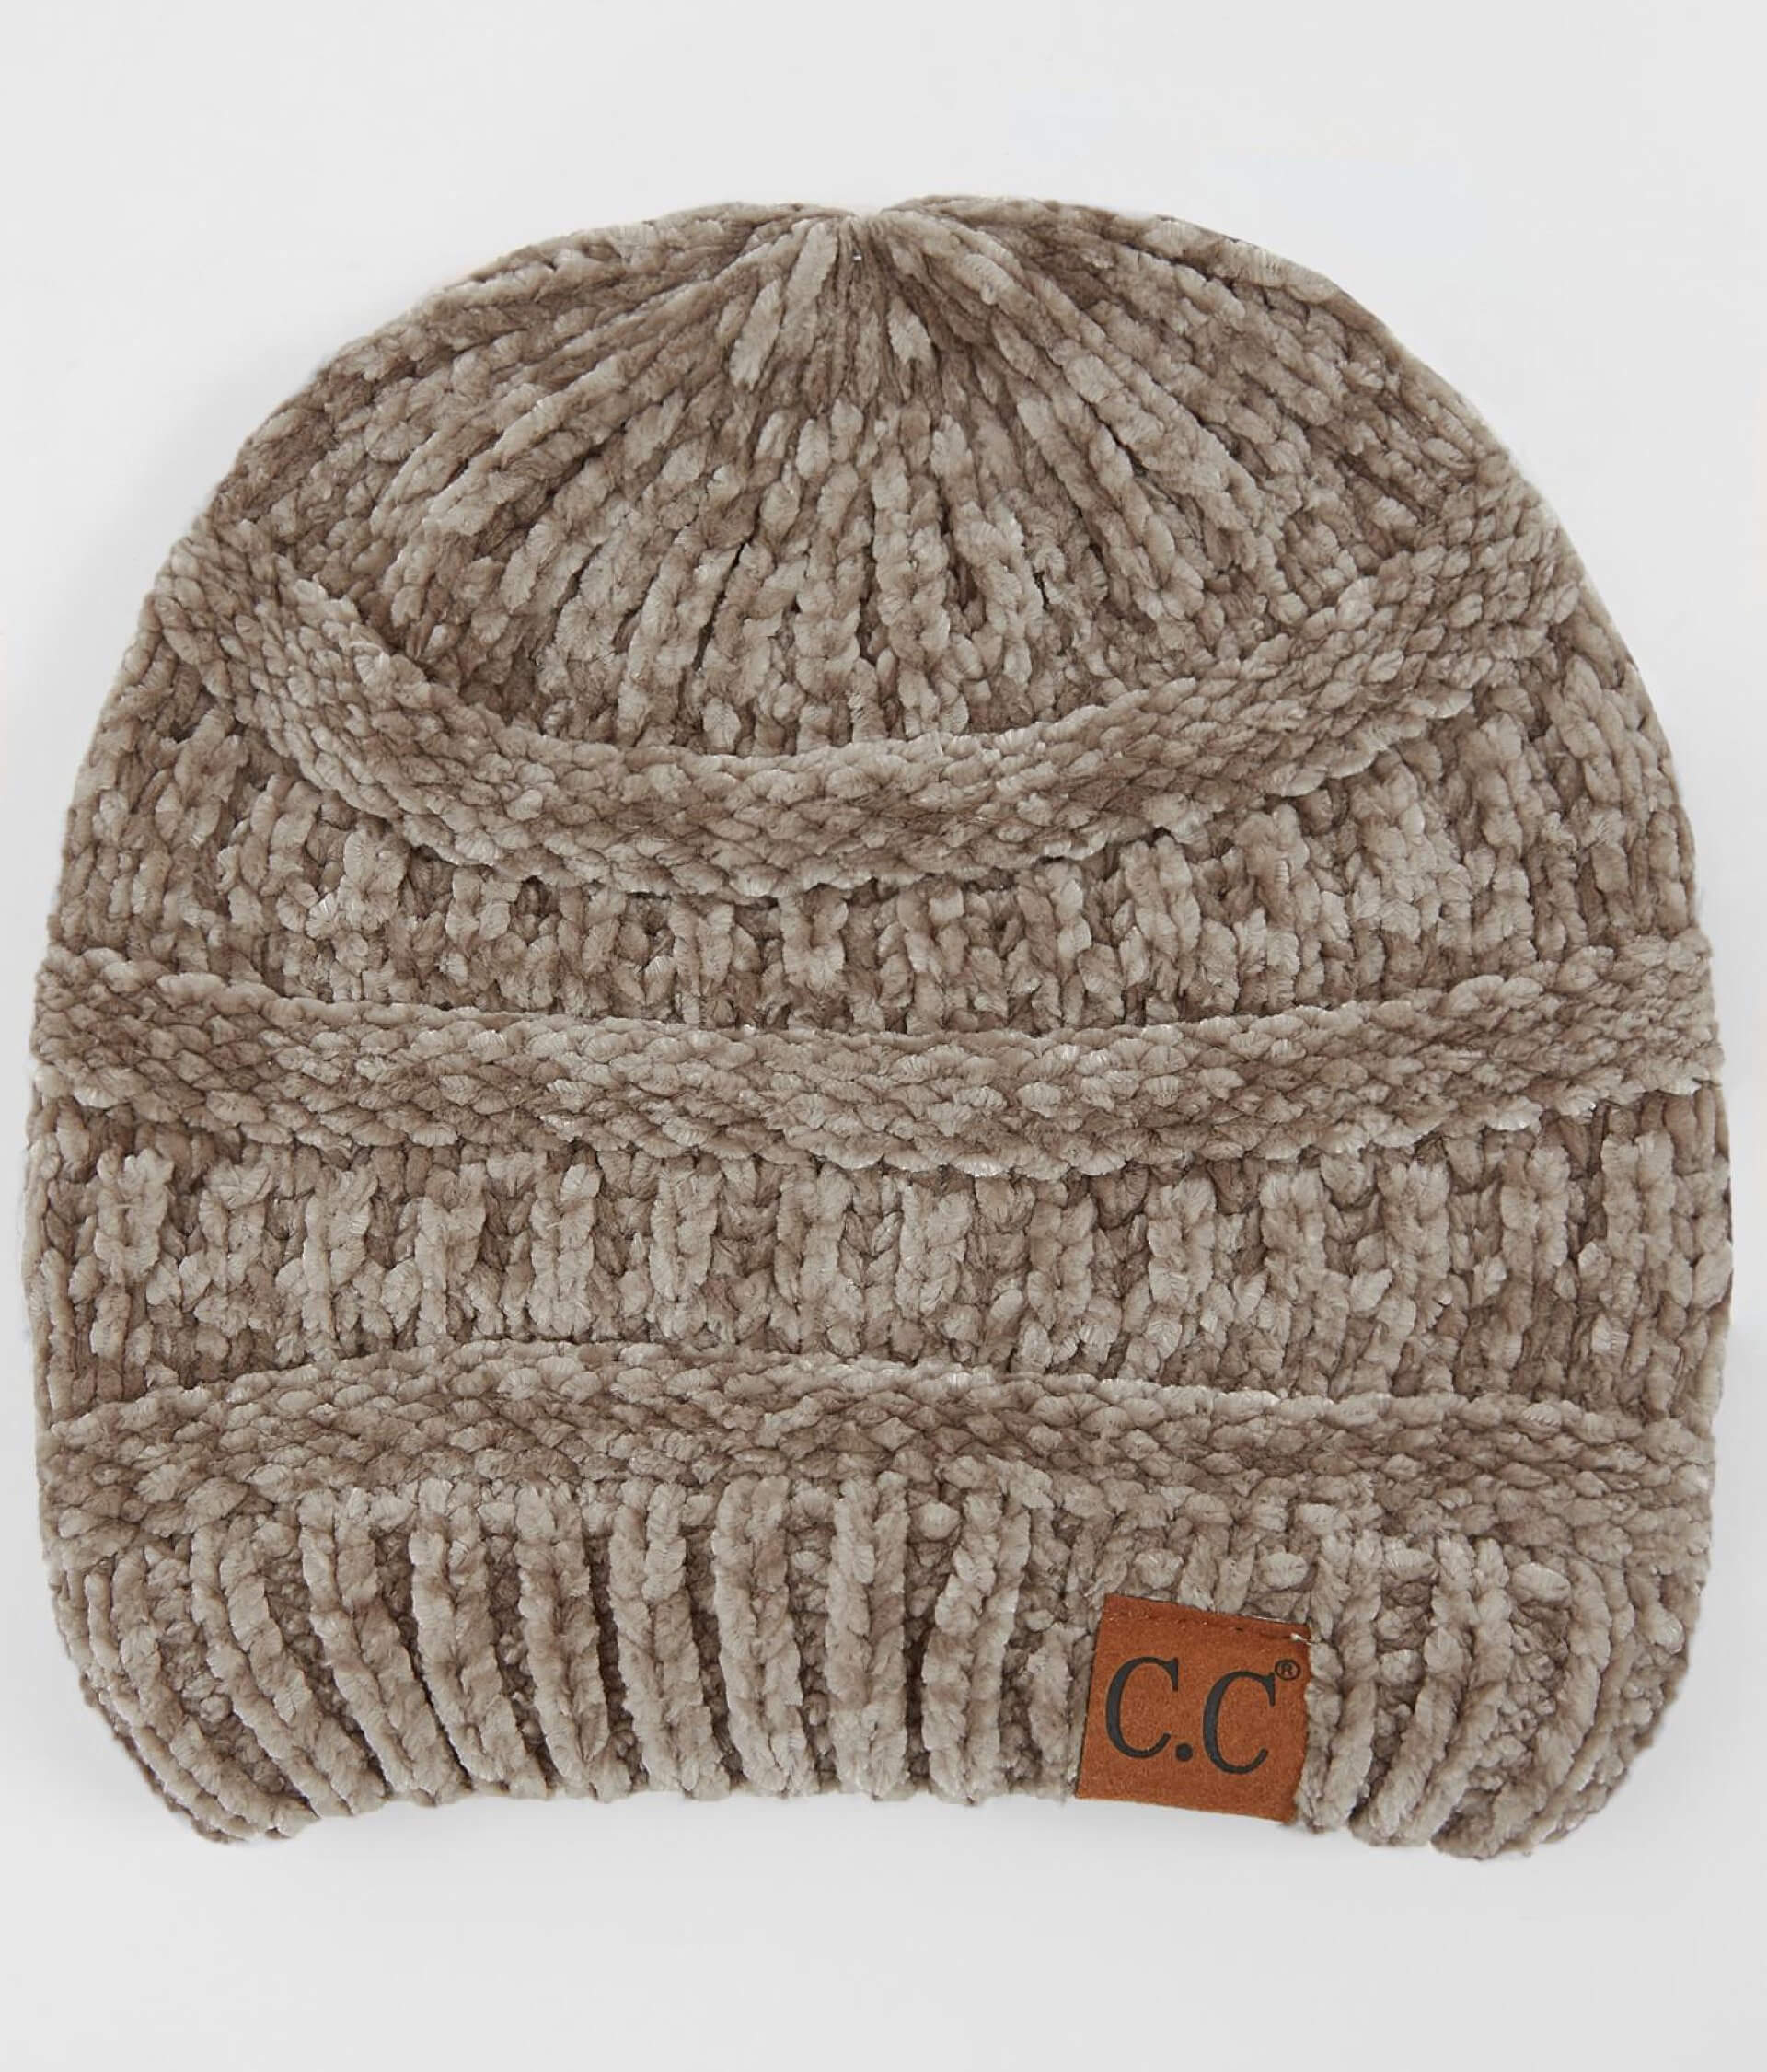 1501cf73a C.C Chenille Beanie - Women's Hats in Taupe | Buckle